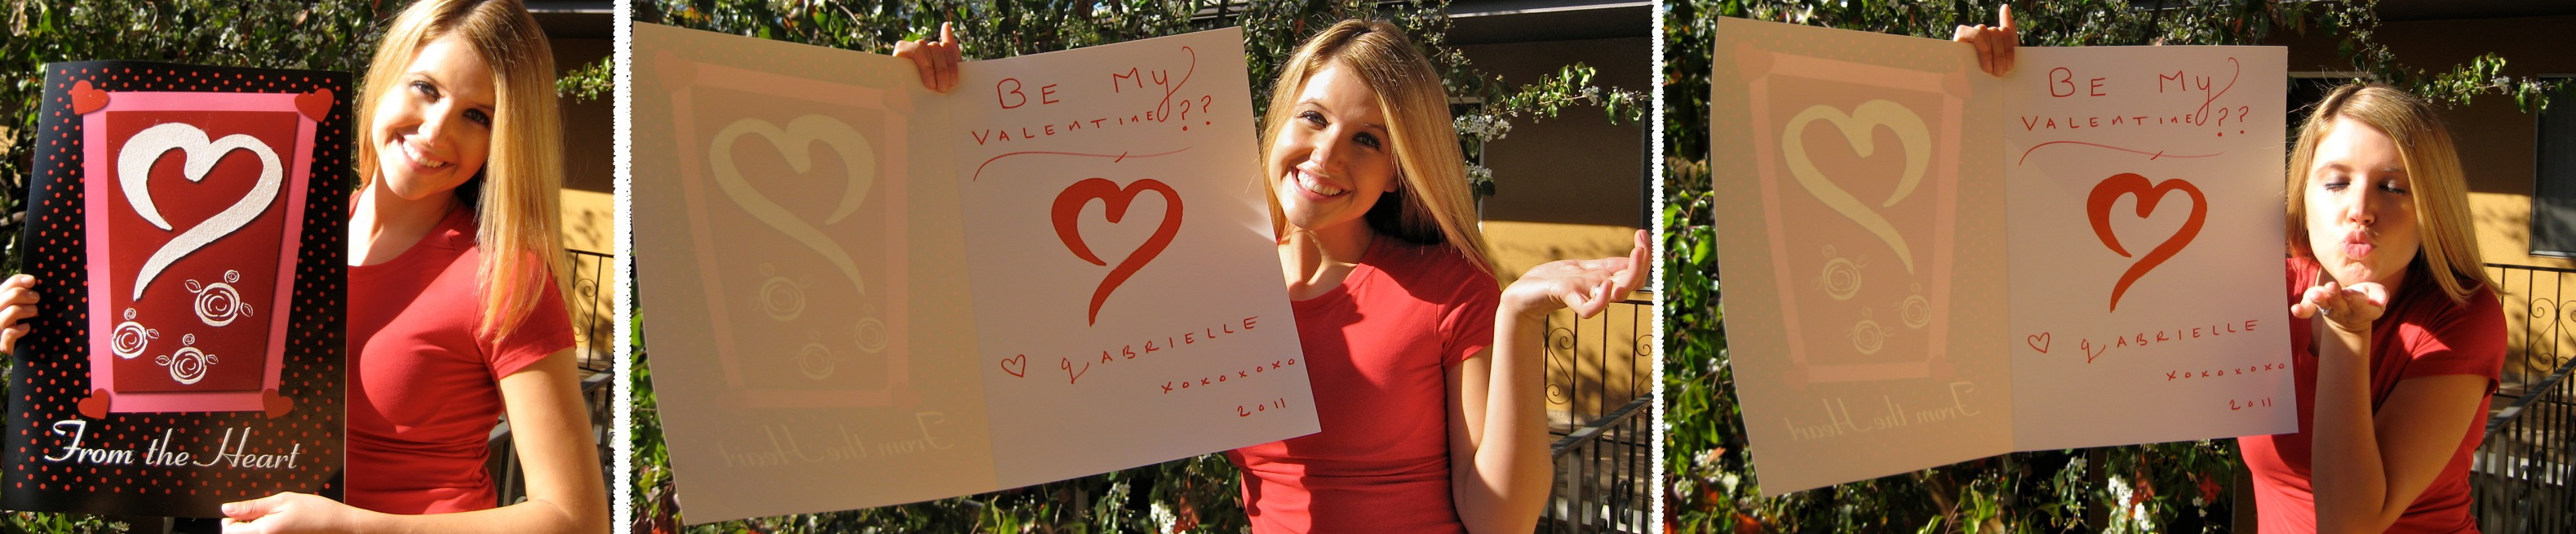 Gabrielle Sweetheart Campaign